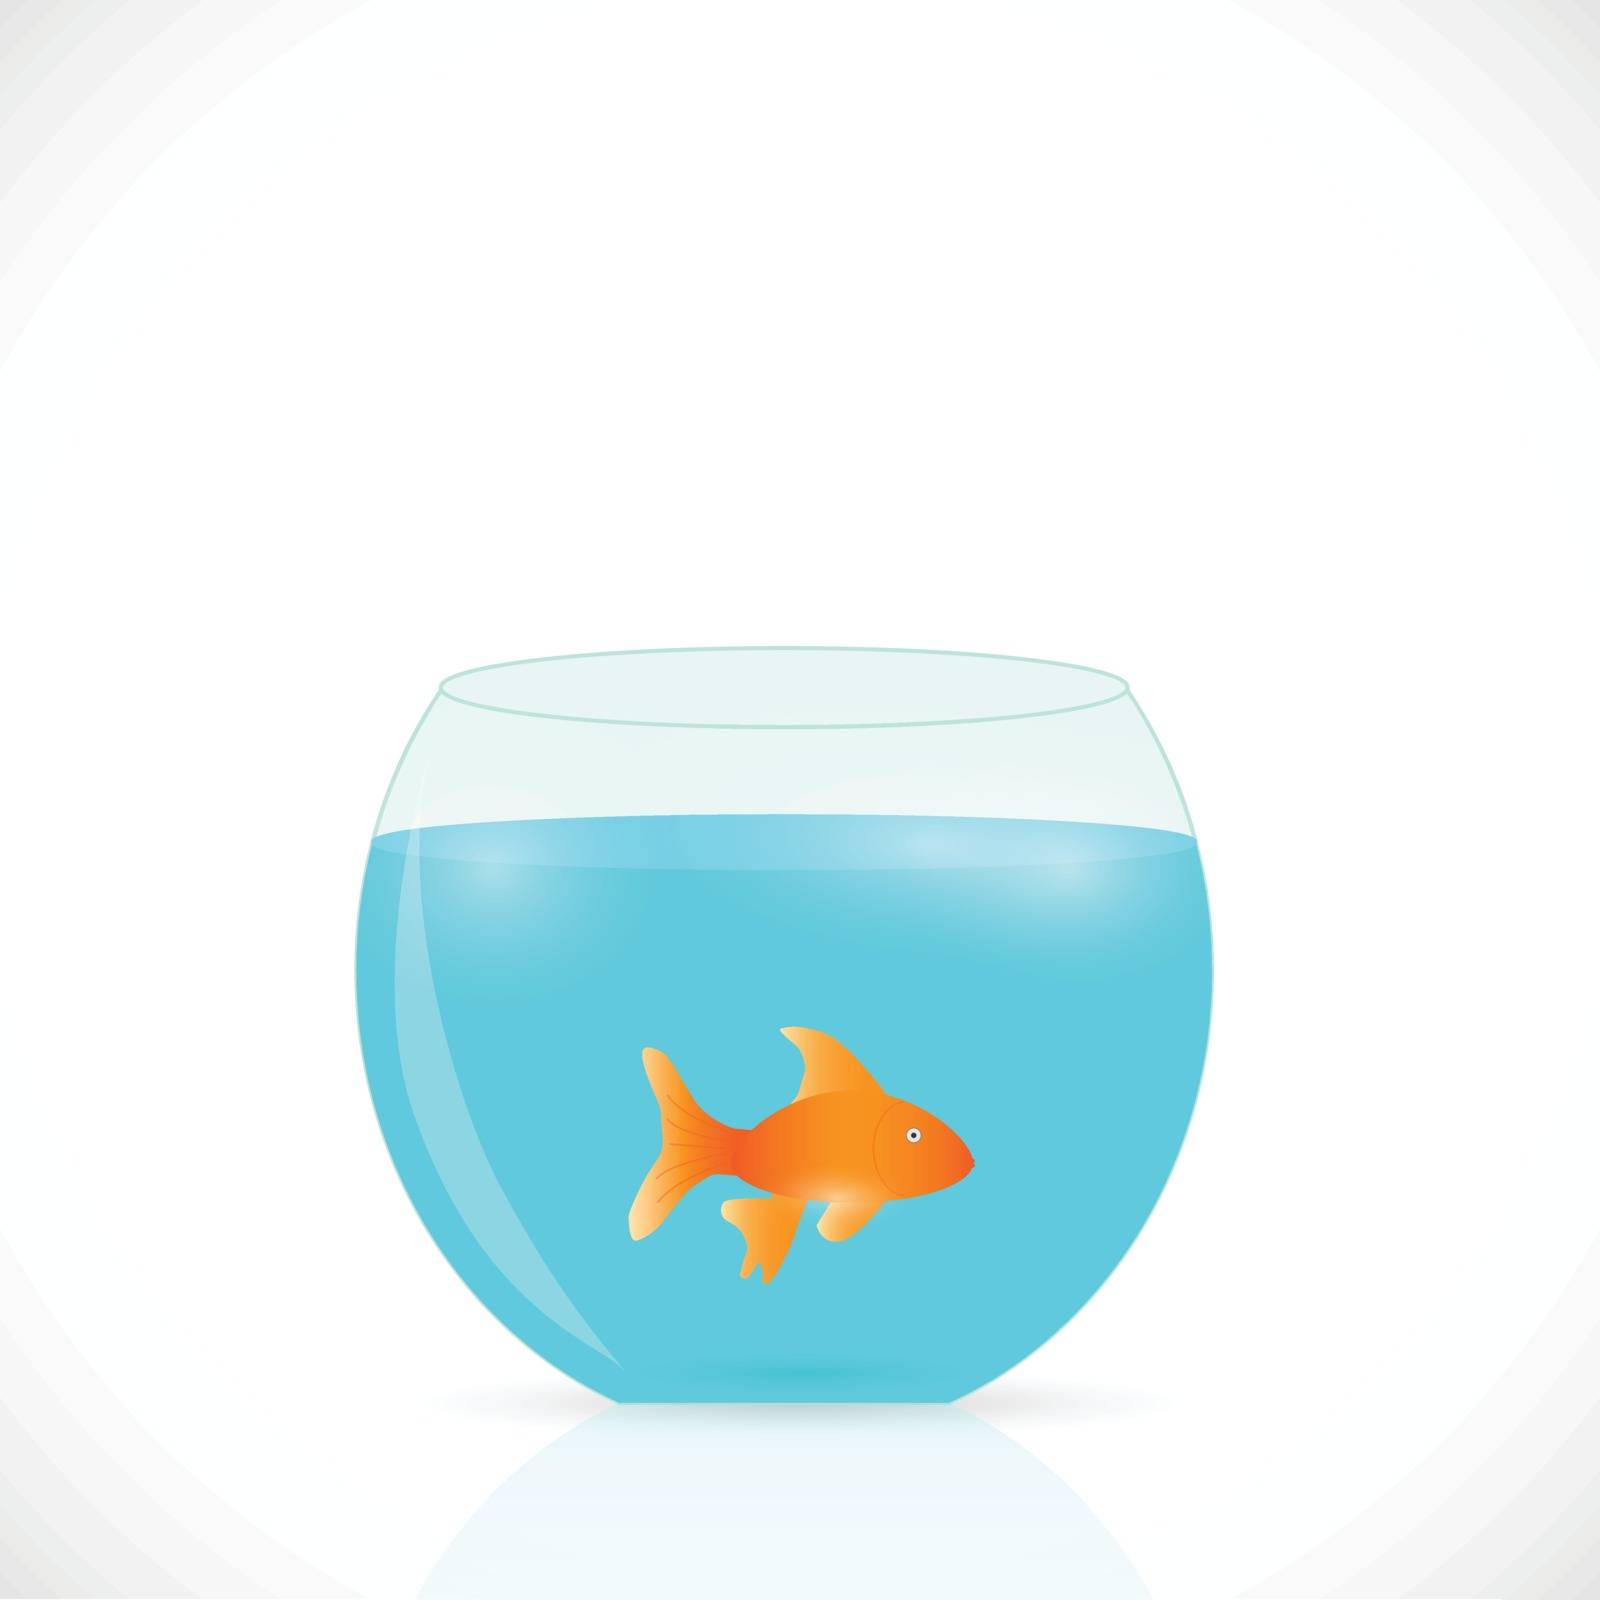 Goldfish Bowl Illustration by nmarques74